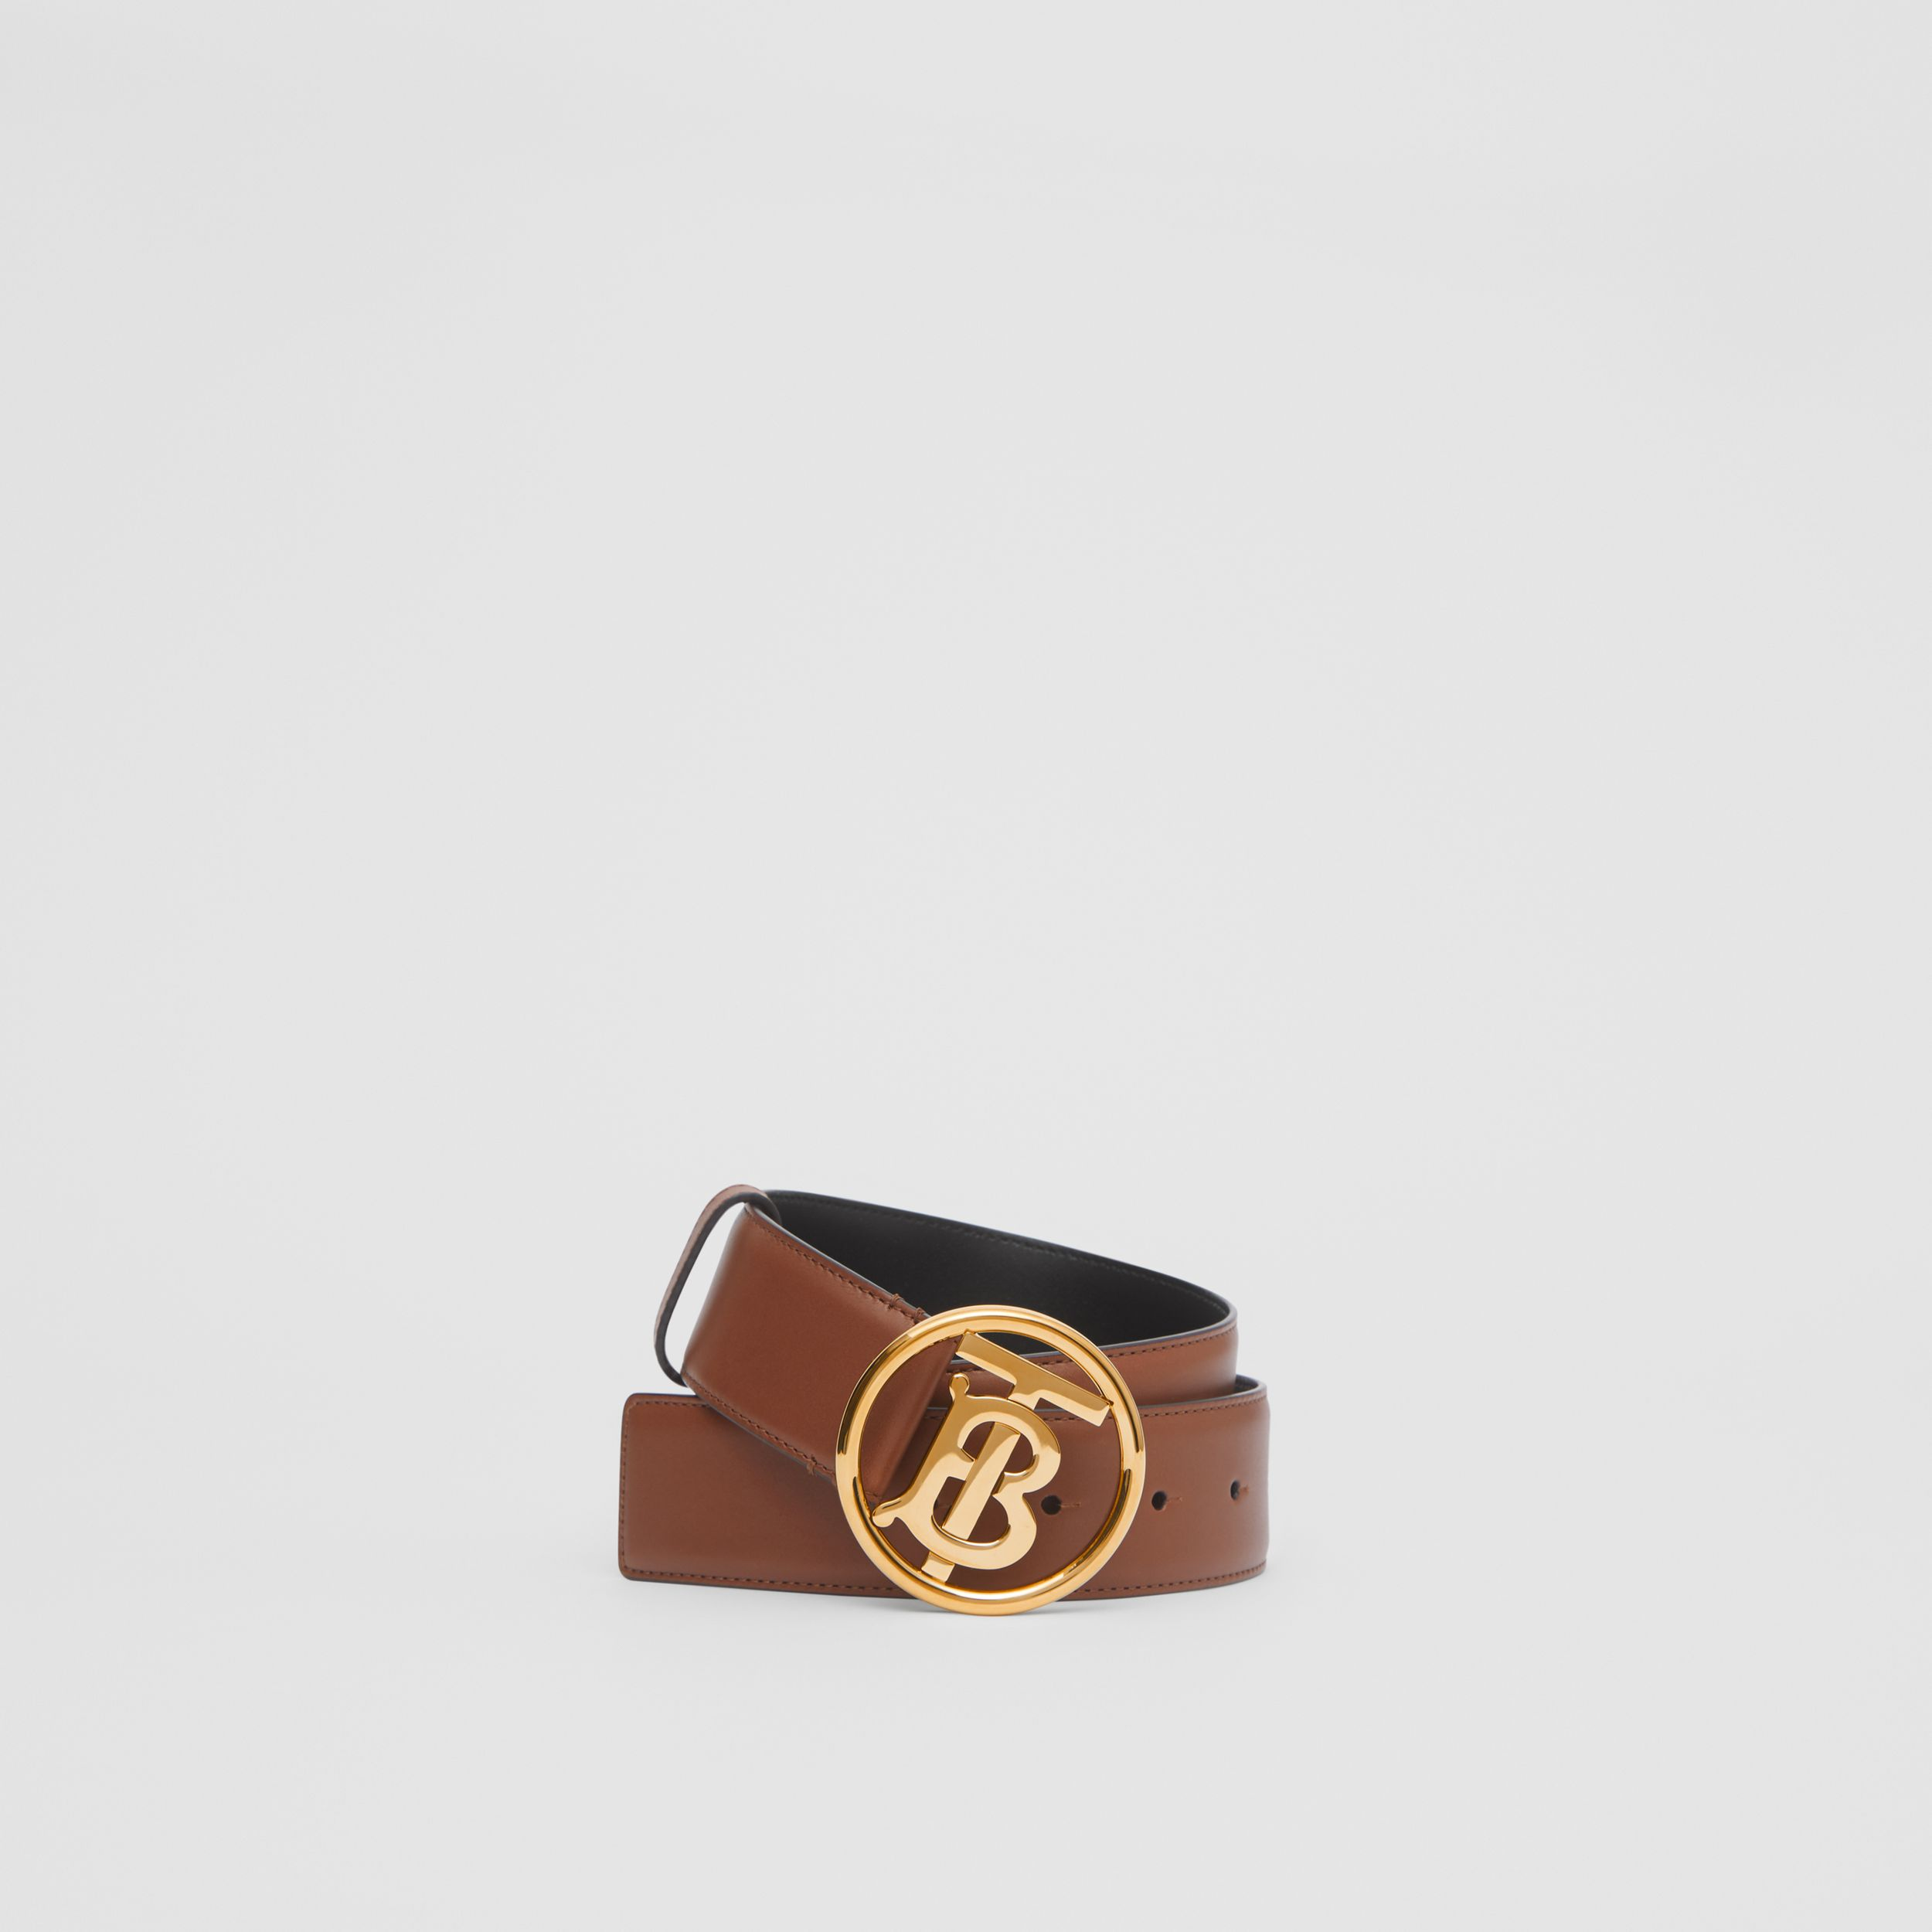 Monogram Motif Leather Belt in Tan/antique Dark Brass | Burberry - 1